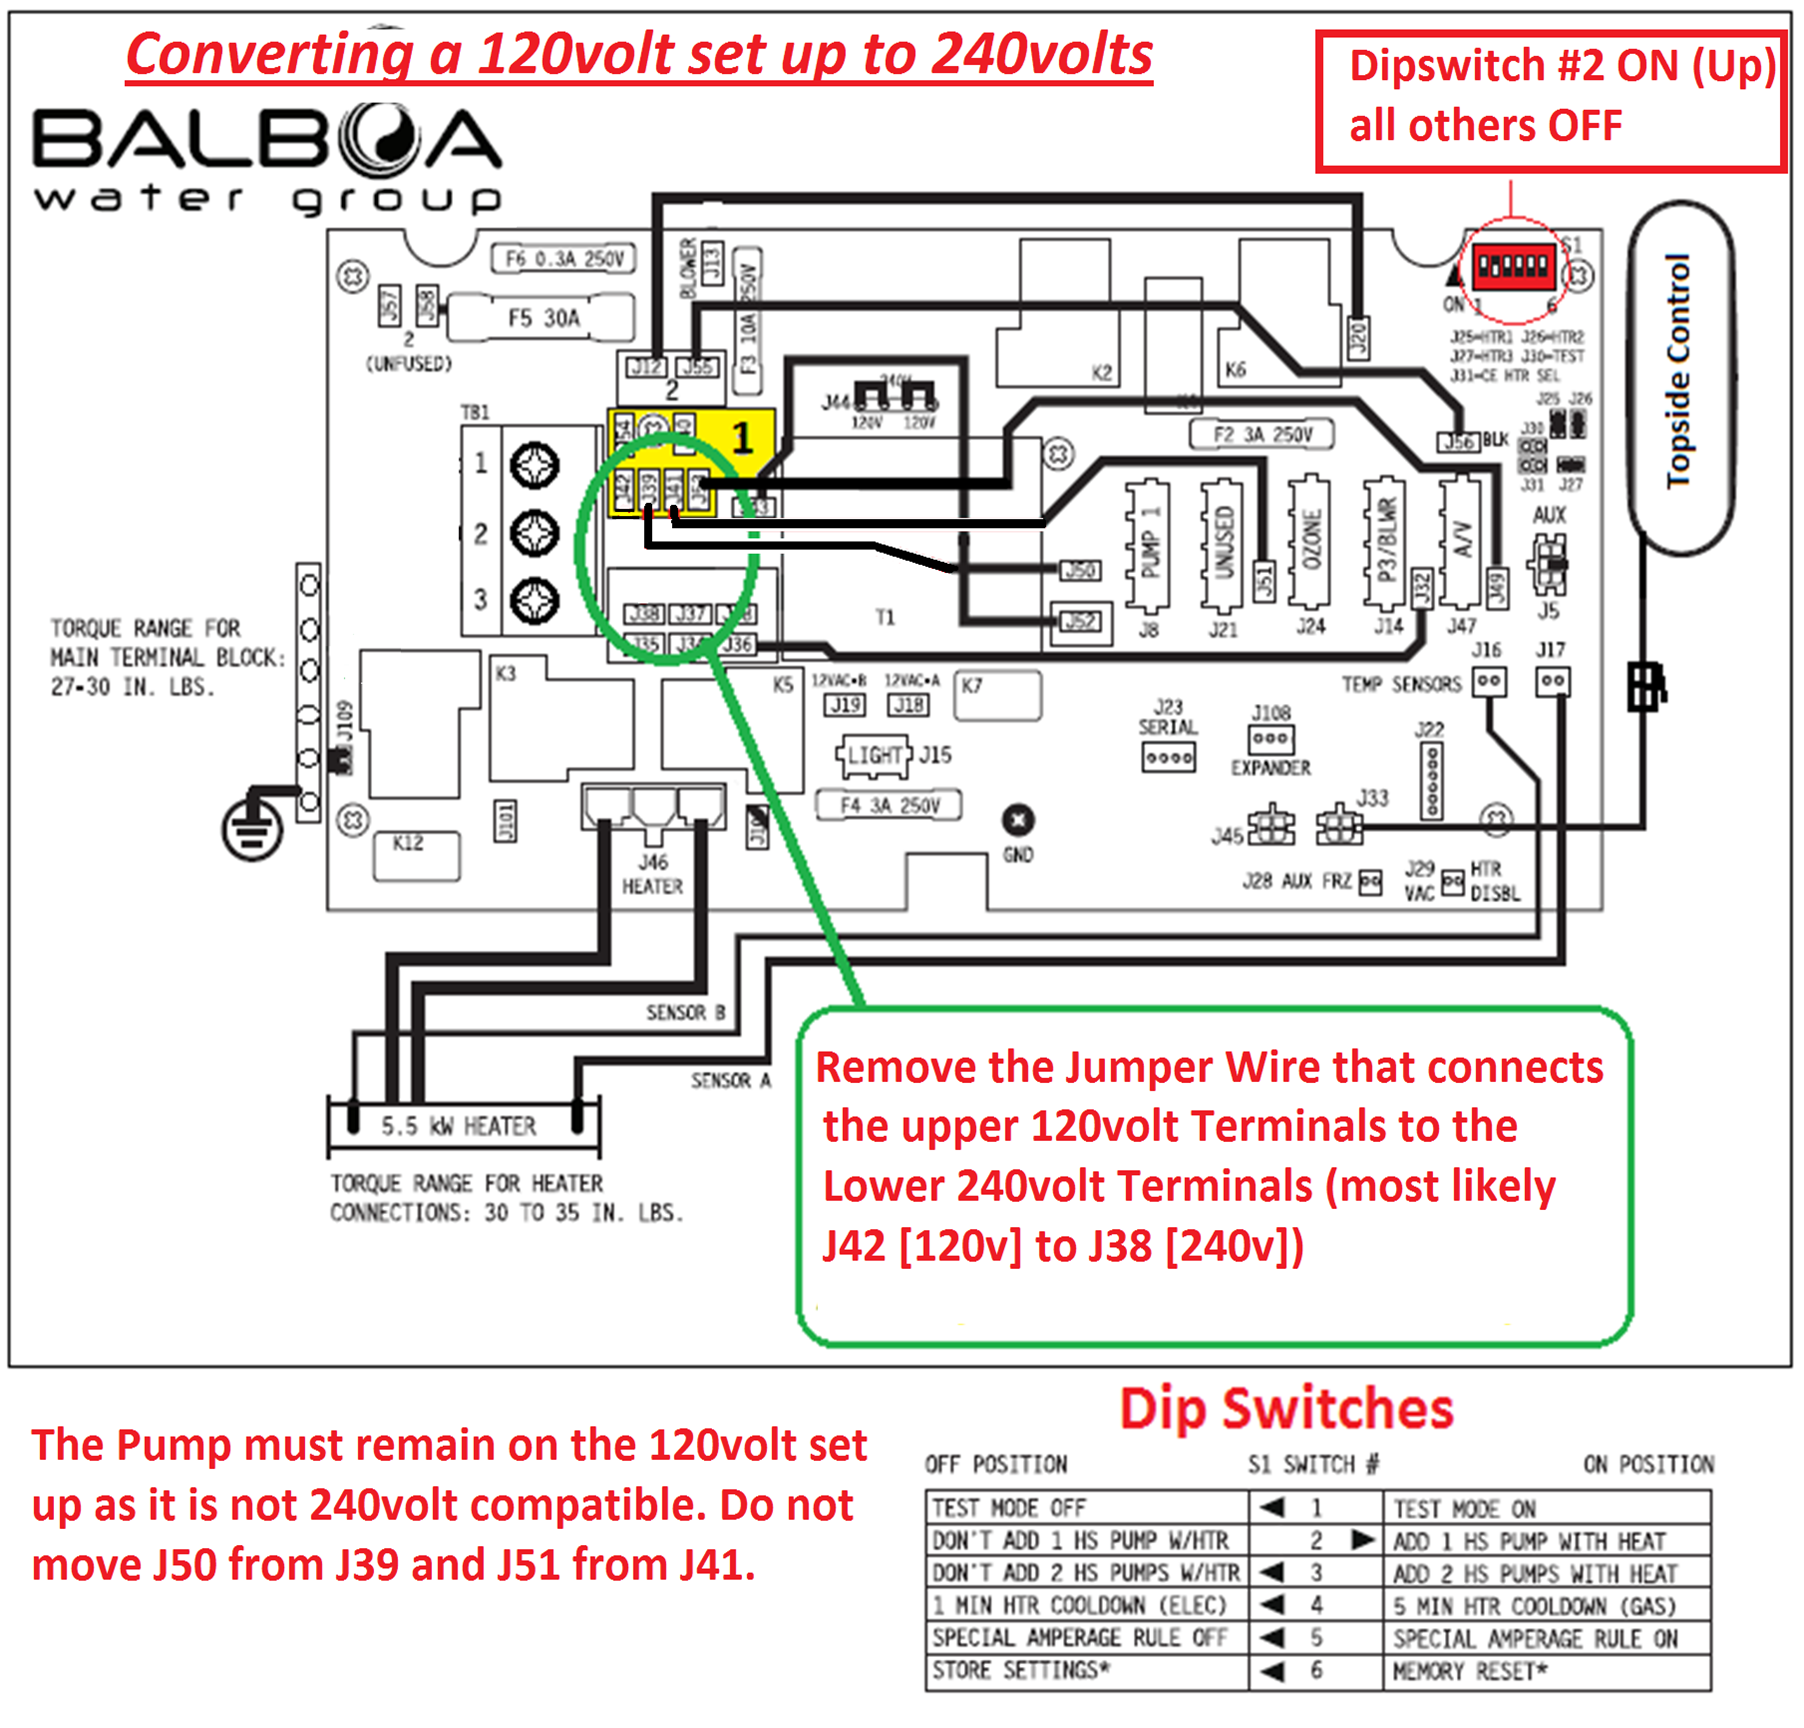 Electrical Installation - Converting a 120V Balboa BP to 240V ... on balboa spa motor, balboa spa parts, dimension one spa circuit board diagram, balboa spa lights, spa pump installation diagram, watkins control diagram, balboa vs series wiring, swimming pool pump plumbing diagram, balboa spa relay, balboa spa plumbing diagram, morgan spa diagram, typical swimming pool plumbing diagram,